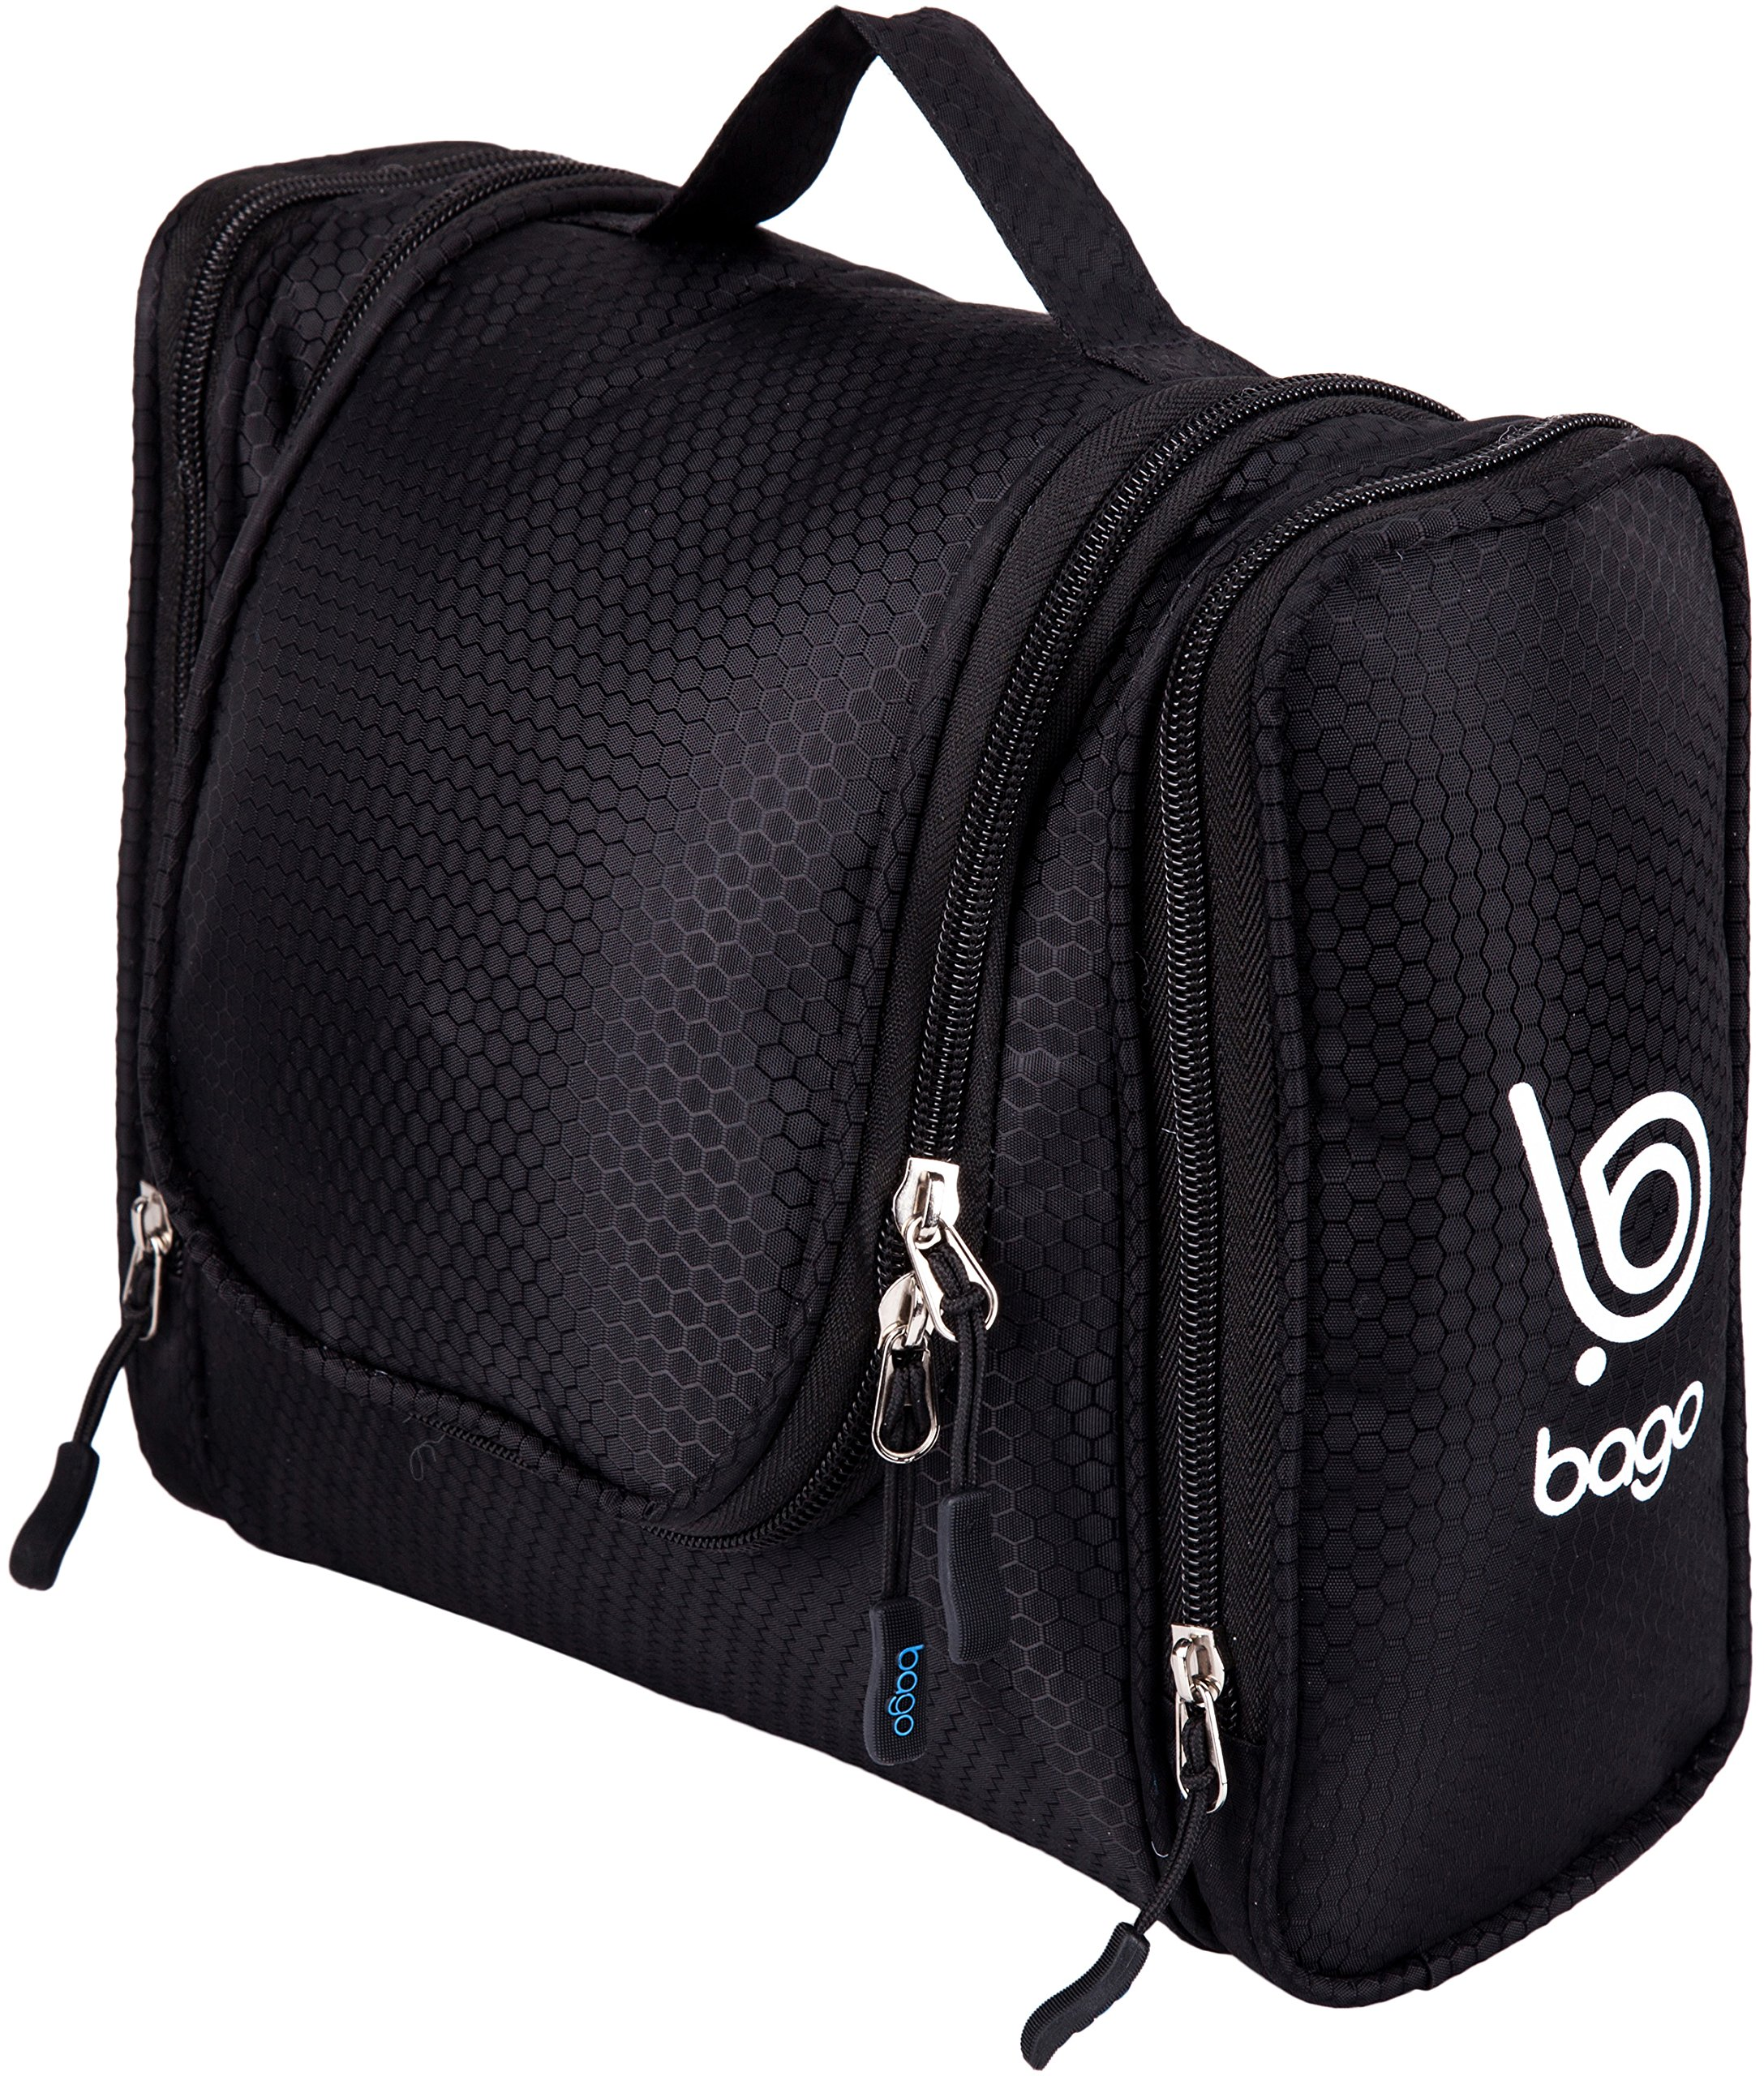 Bago Hanging Toiletry Bag For Men & Women - Toiletries Travel Organizer (Black)